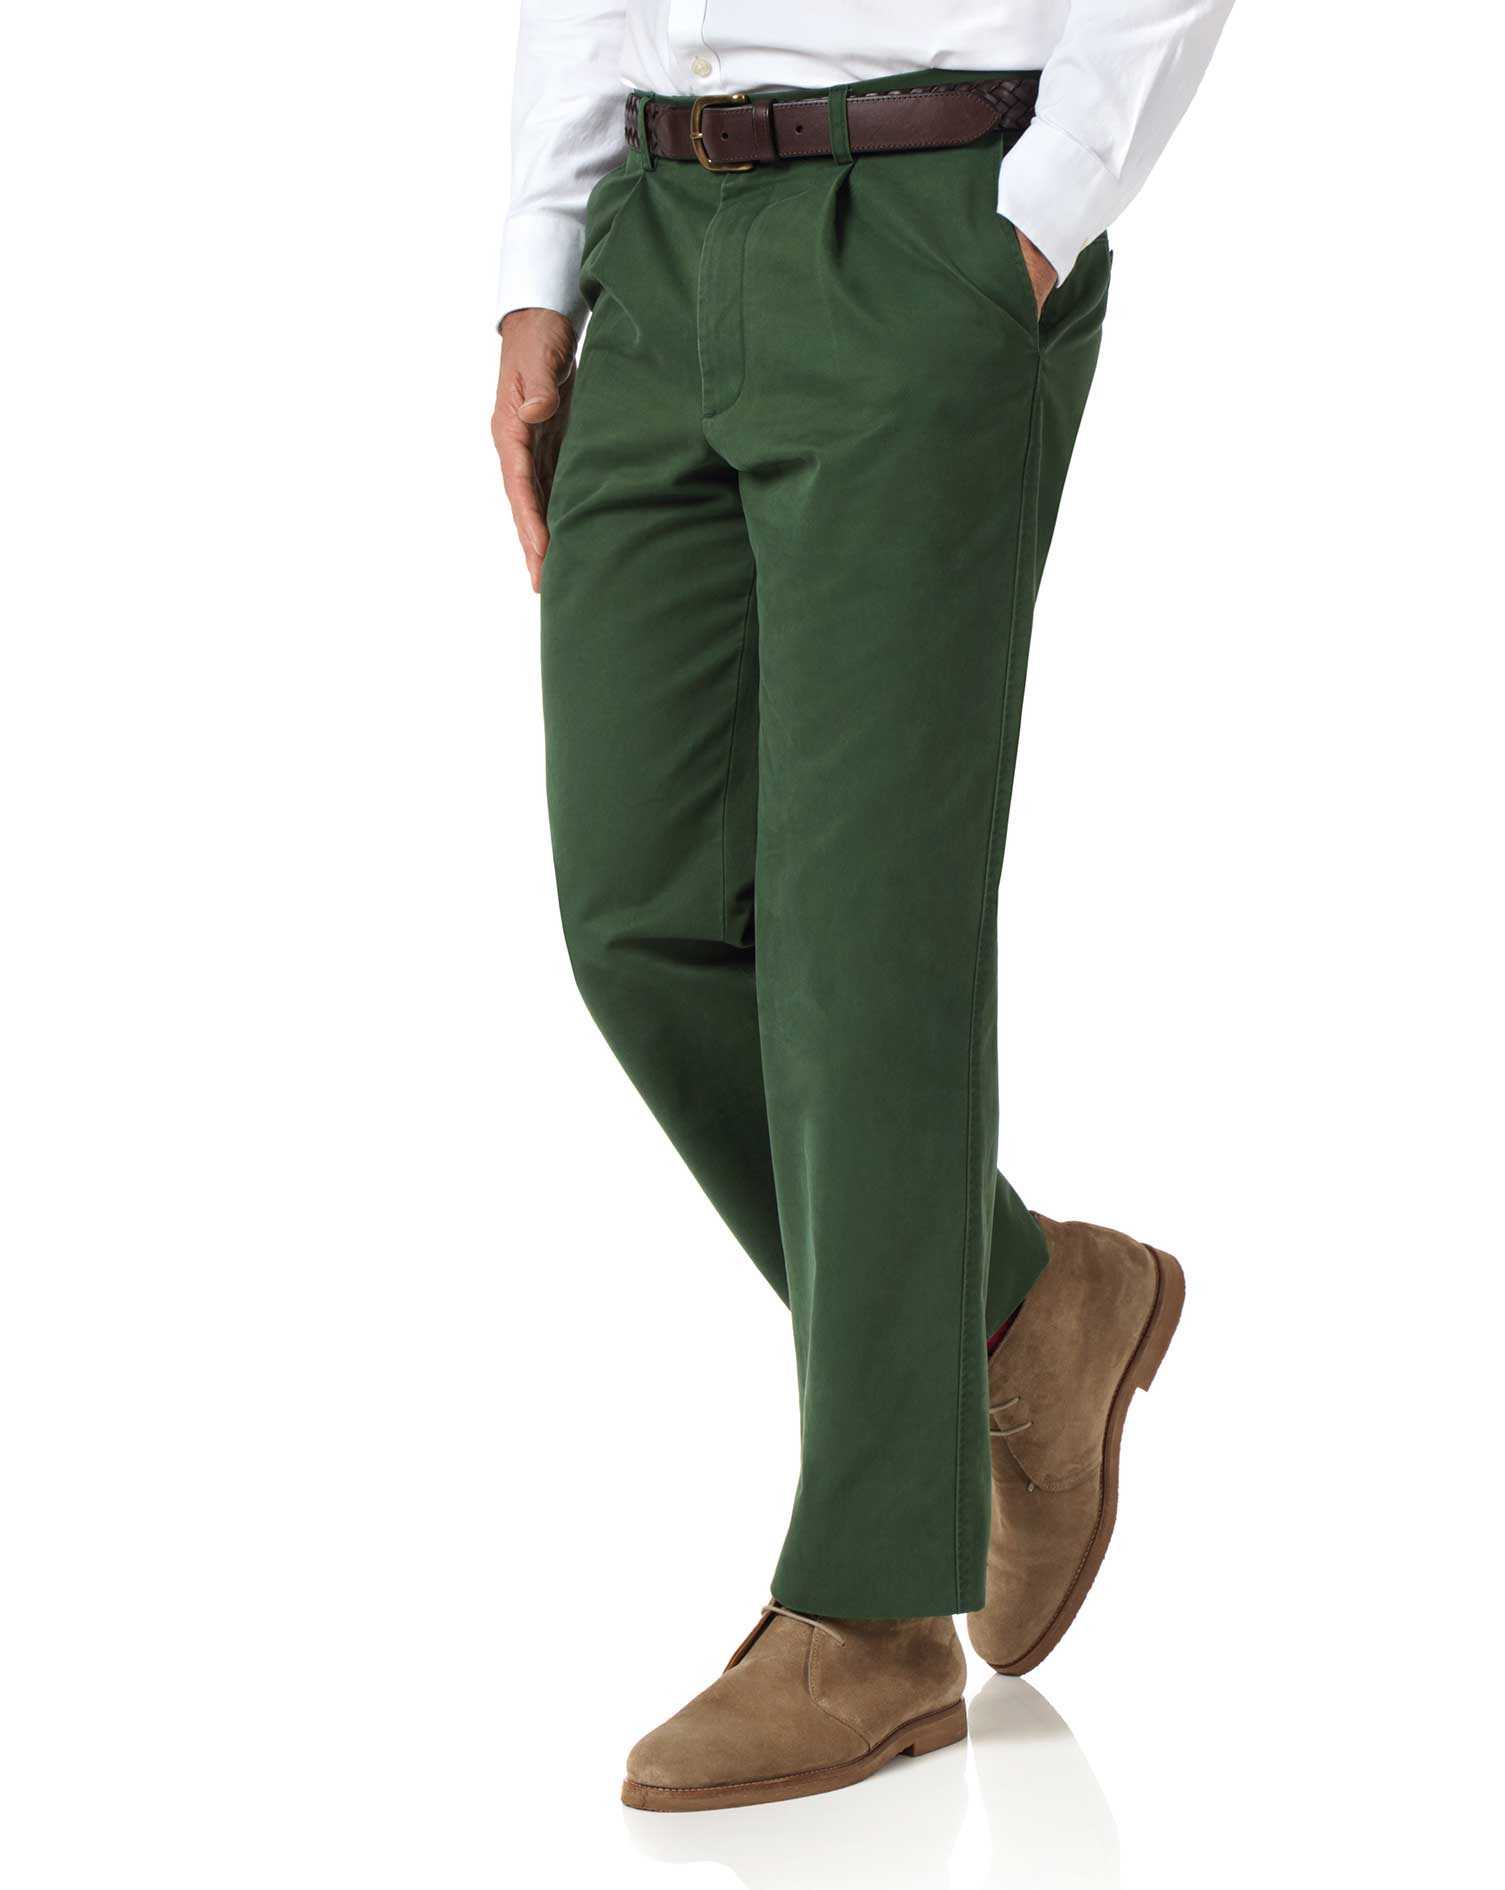 Green Classic Fit Single Pleat Washed Cotton Chino Trousers Size W40 L32 by Charles Tyrwhitt